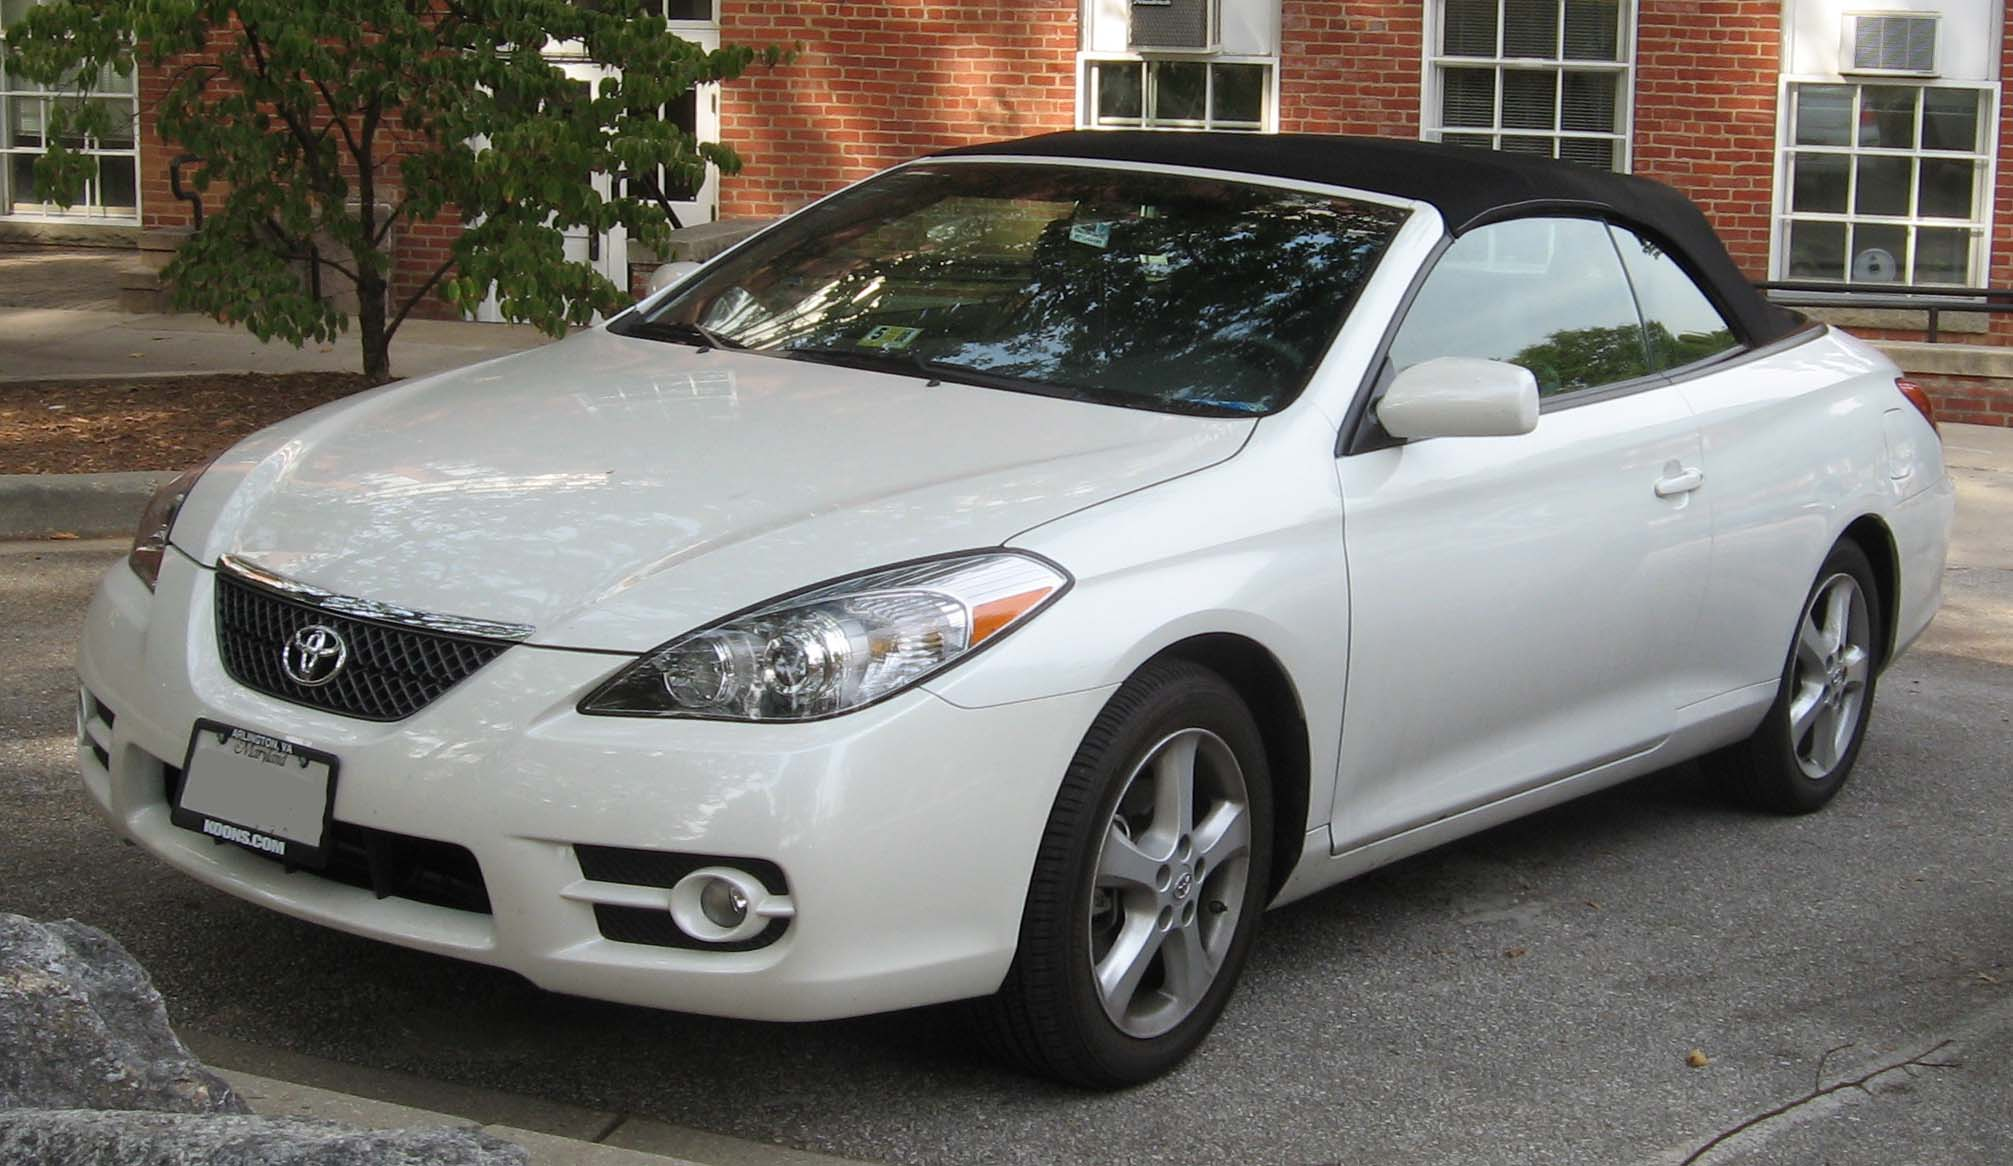 Toyota Solara Convertible Photos Reviews News Specs